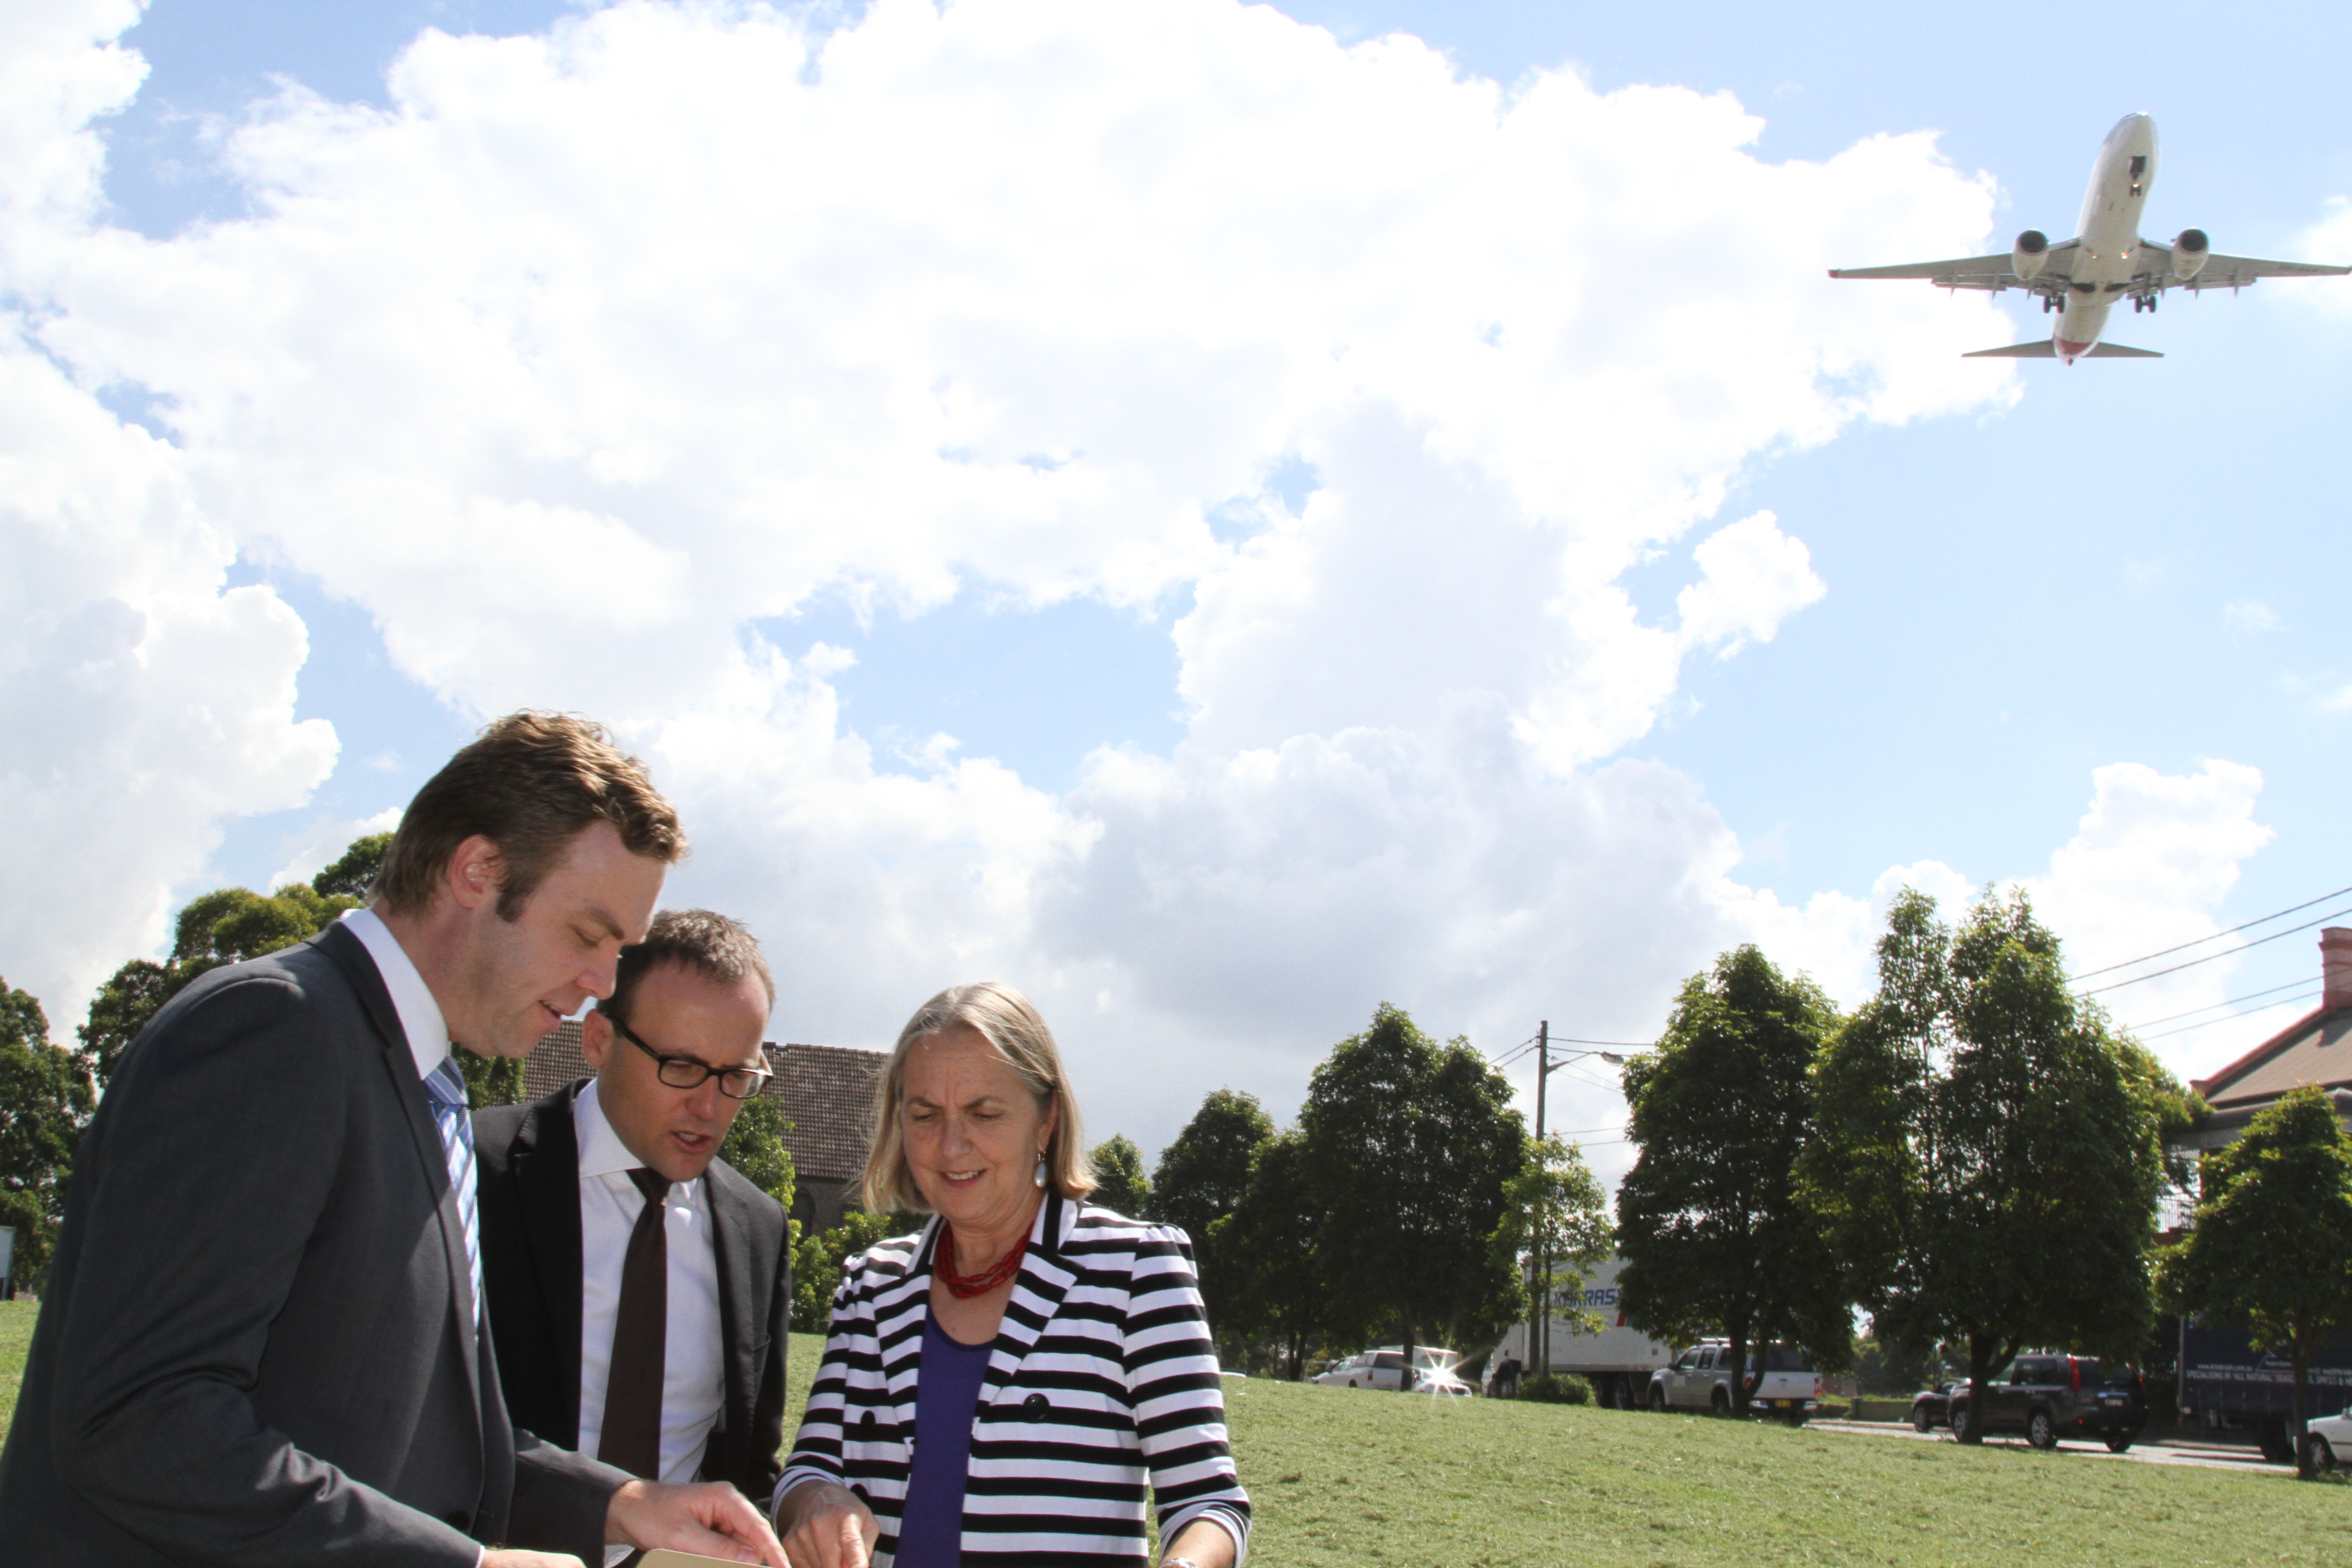 Copy_of_High_Speed_Rail_-_Bandt__Rhiannon__Parker_with_plane.jpg